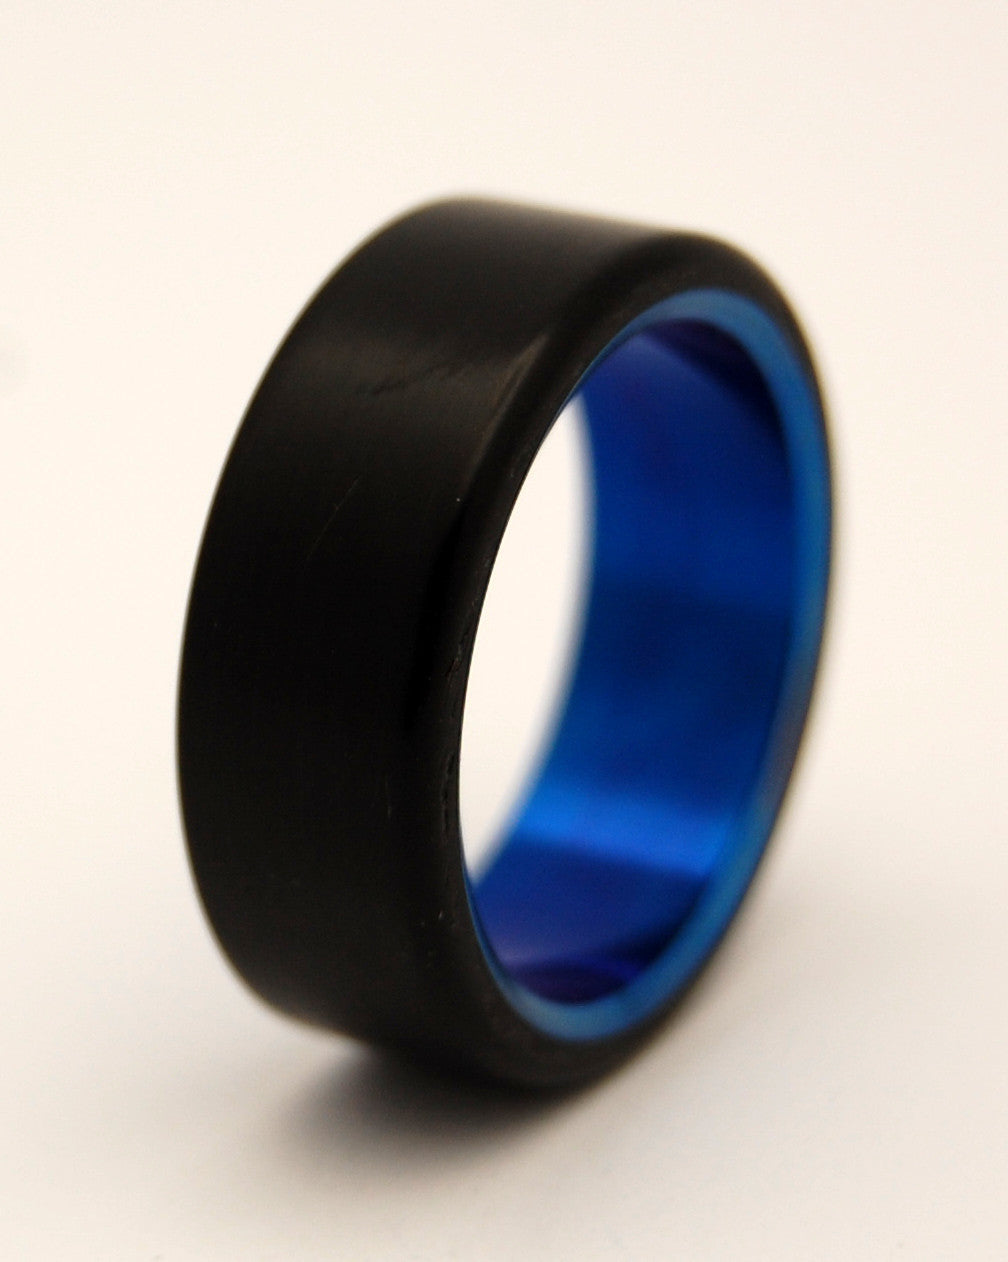 OTHELLO | Black Resin Blue Titanium Men's Wedding Rings - Minter and Richter Designs